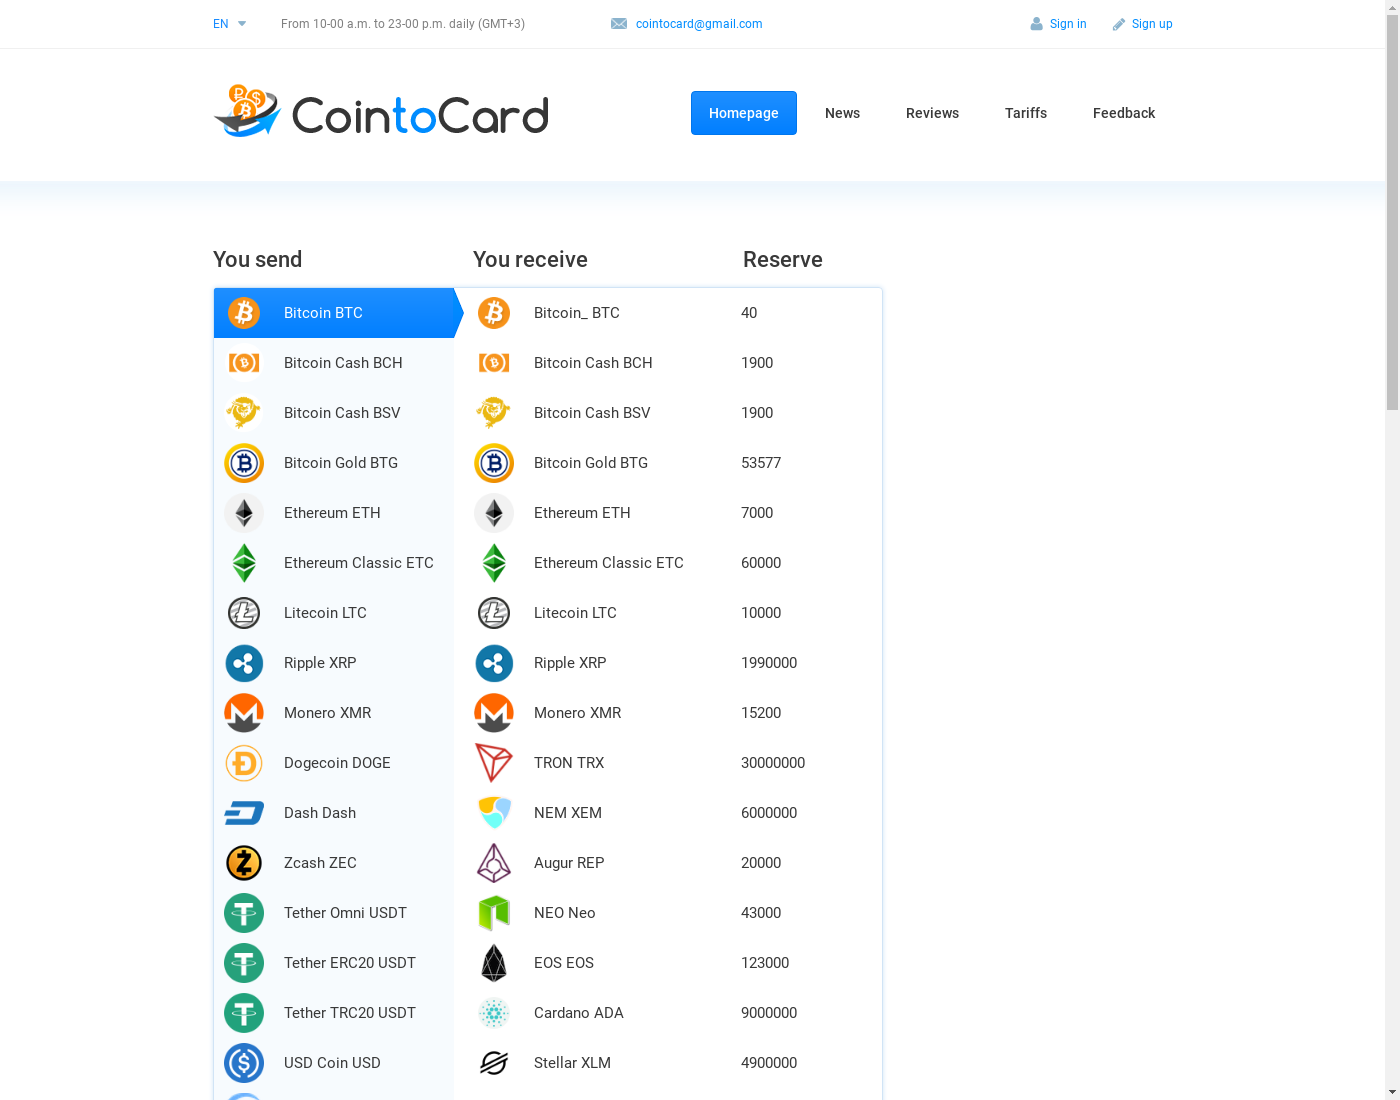 CoinToCard user interface: the home page in English